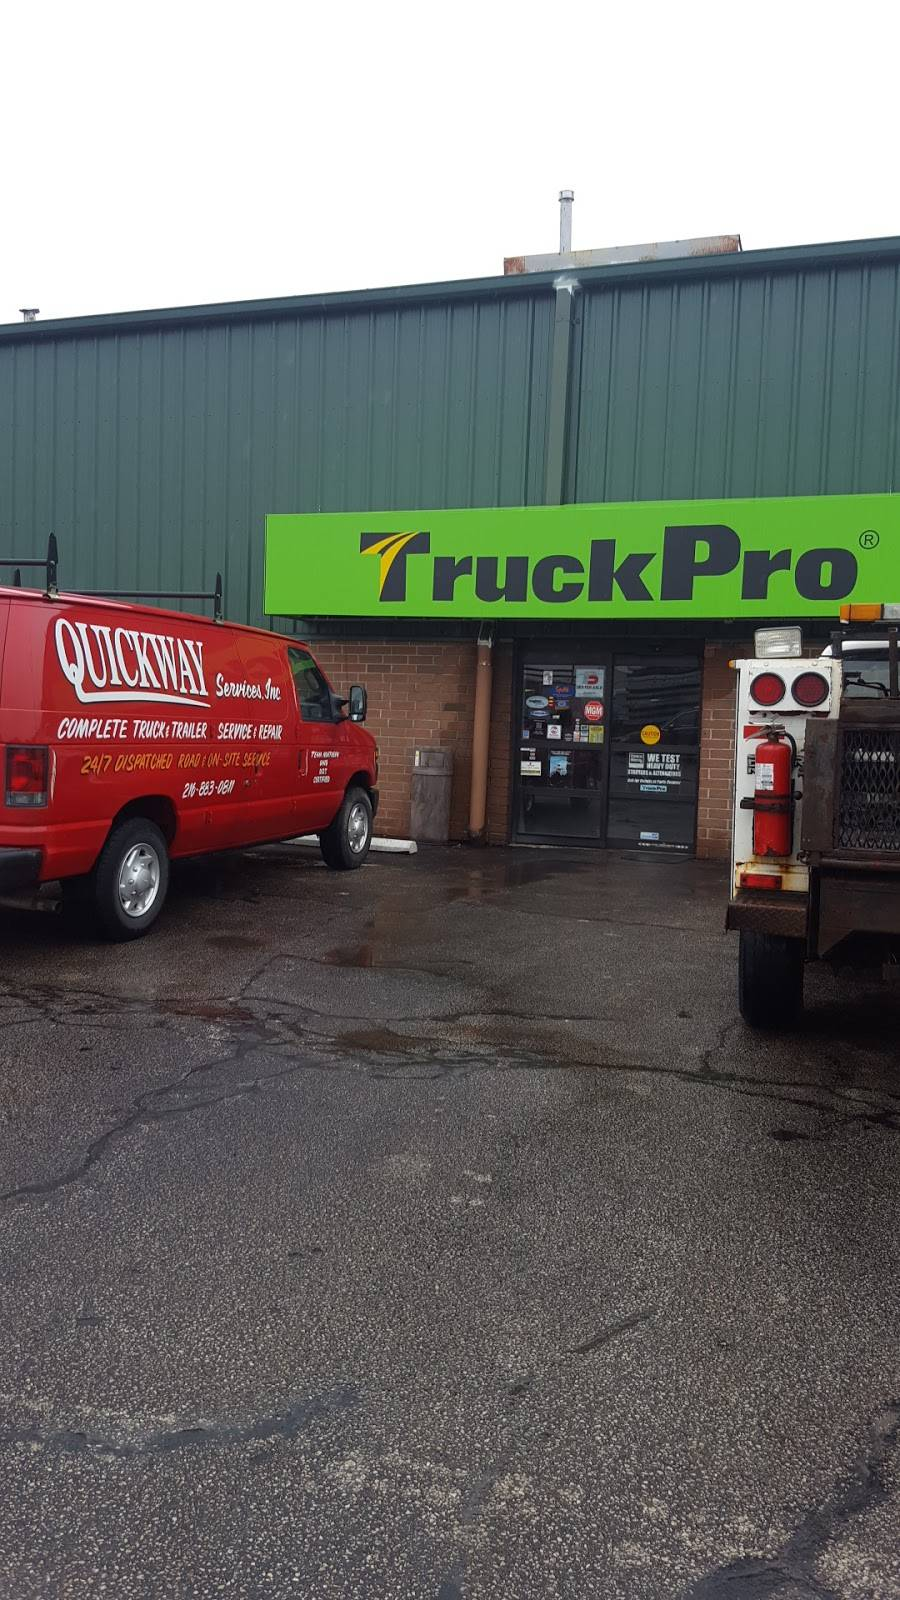 TruckPro - car repair  | Photo 7 of 9 | Address: 5725 Canal Rd, Valley View, OH 44125, USA | Phone: (216) 447-0000